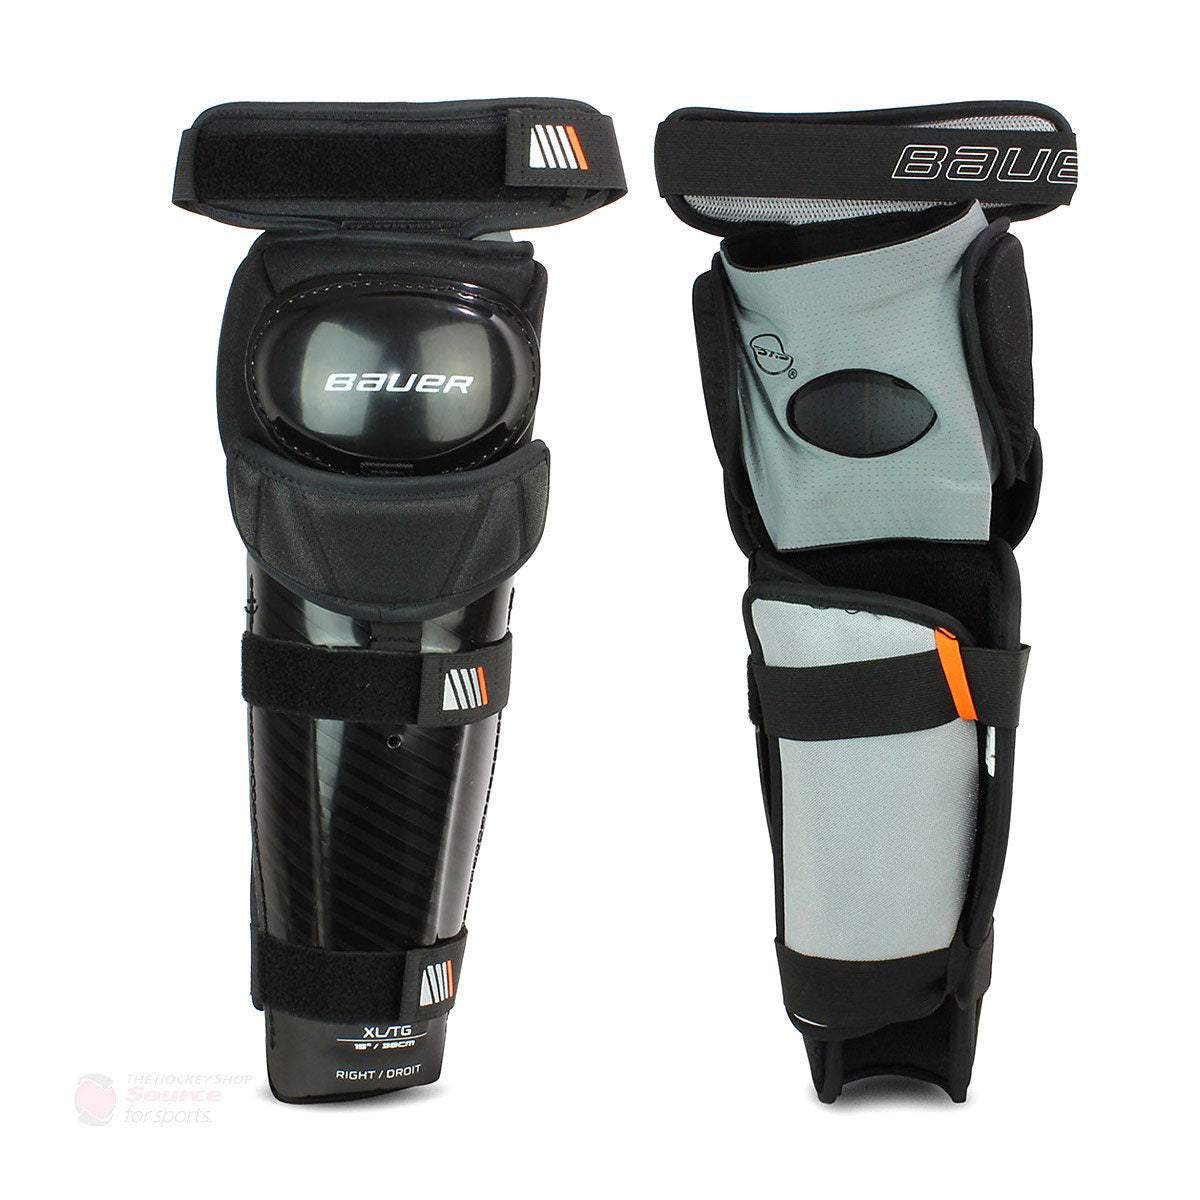 453b3189a62 Bauer Official's Shin Guards – The Hockey Shop Source For Sports